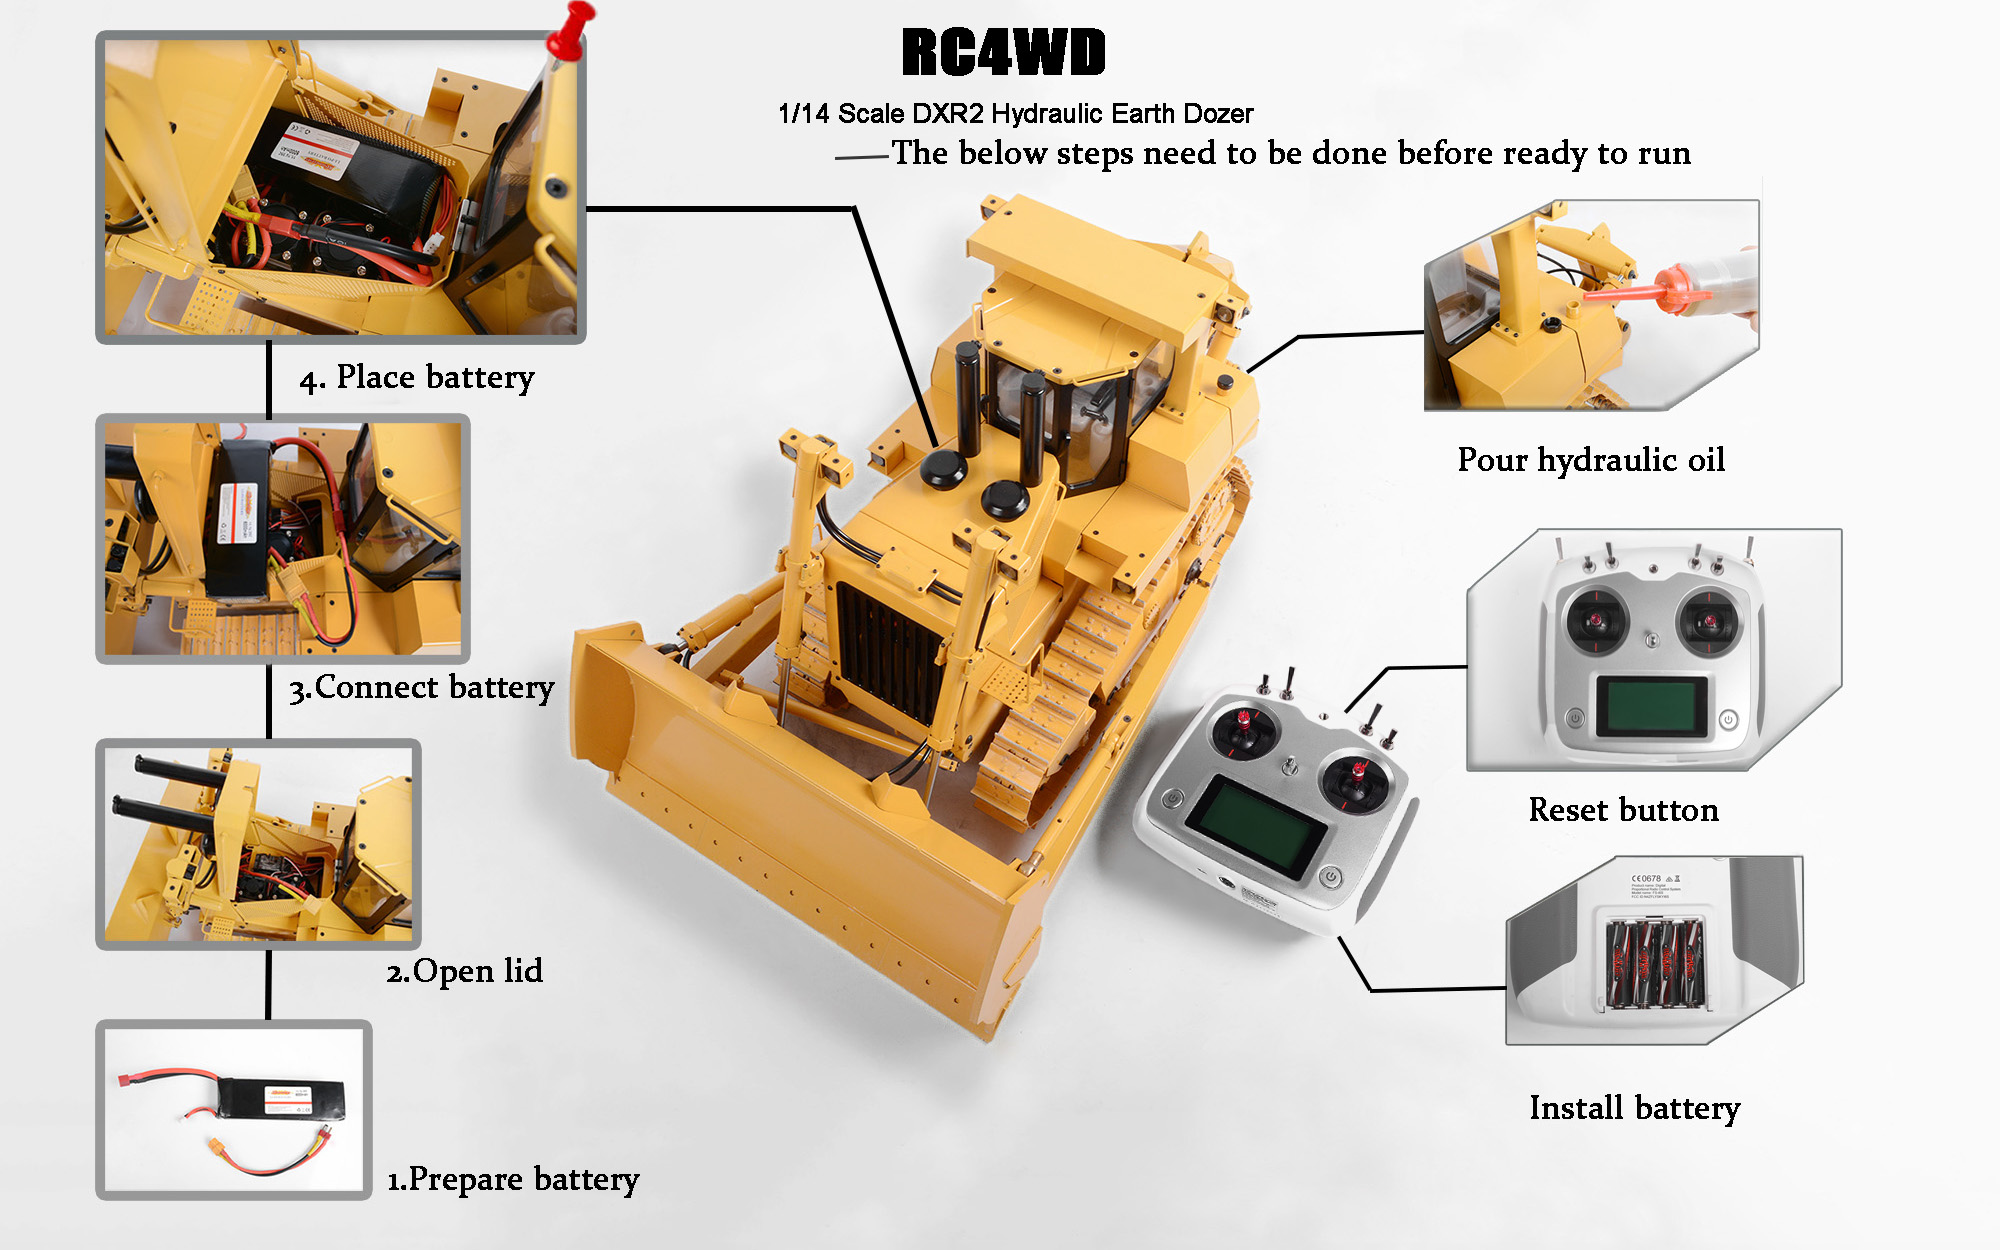 1/14 Scale DXR2 Hydraulic Earth Dozer